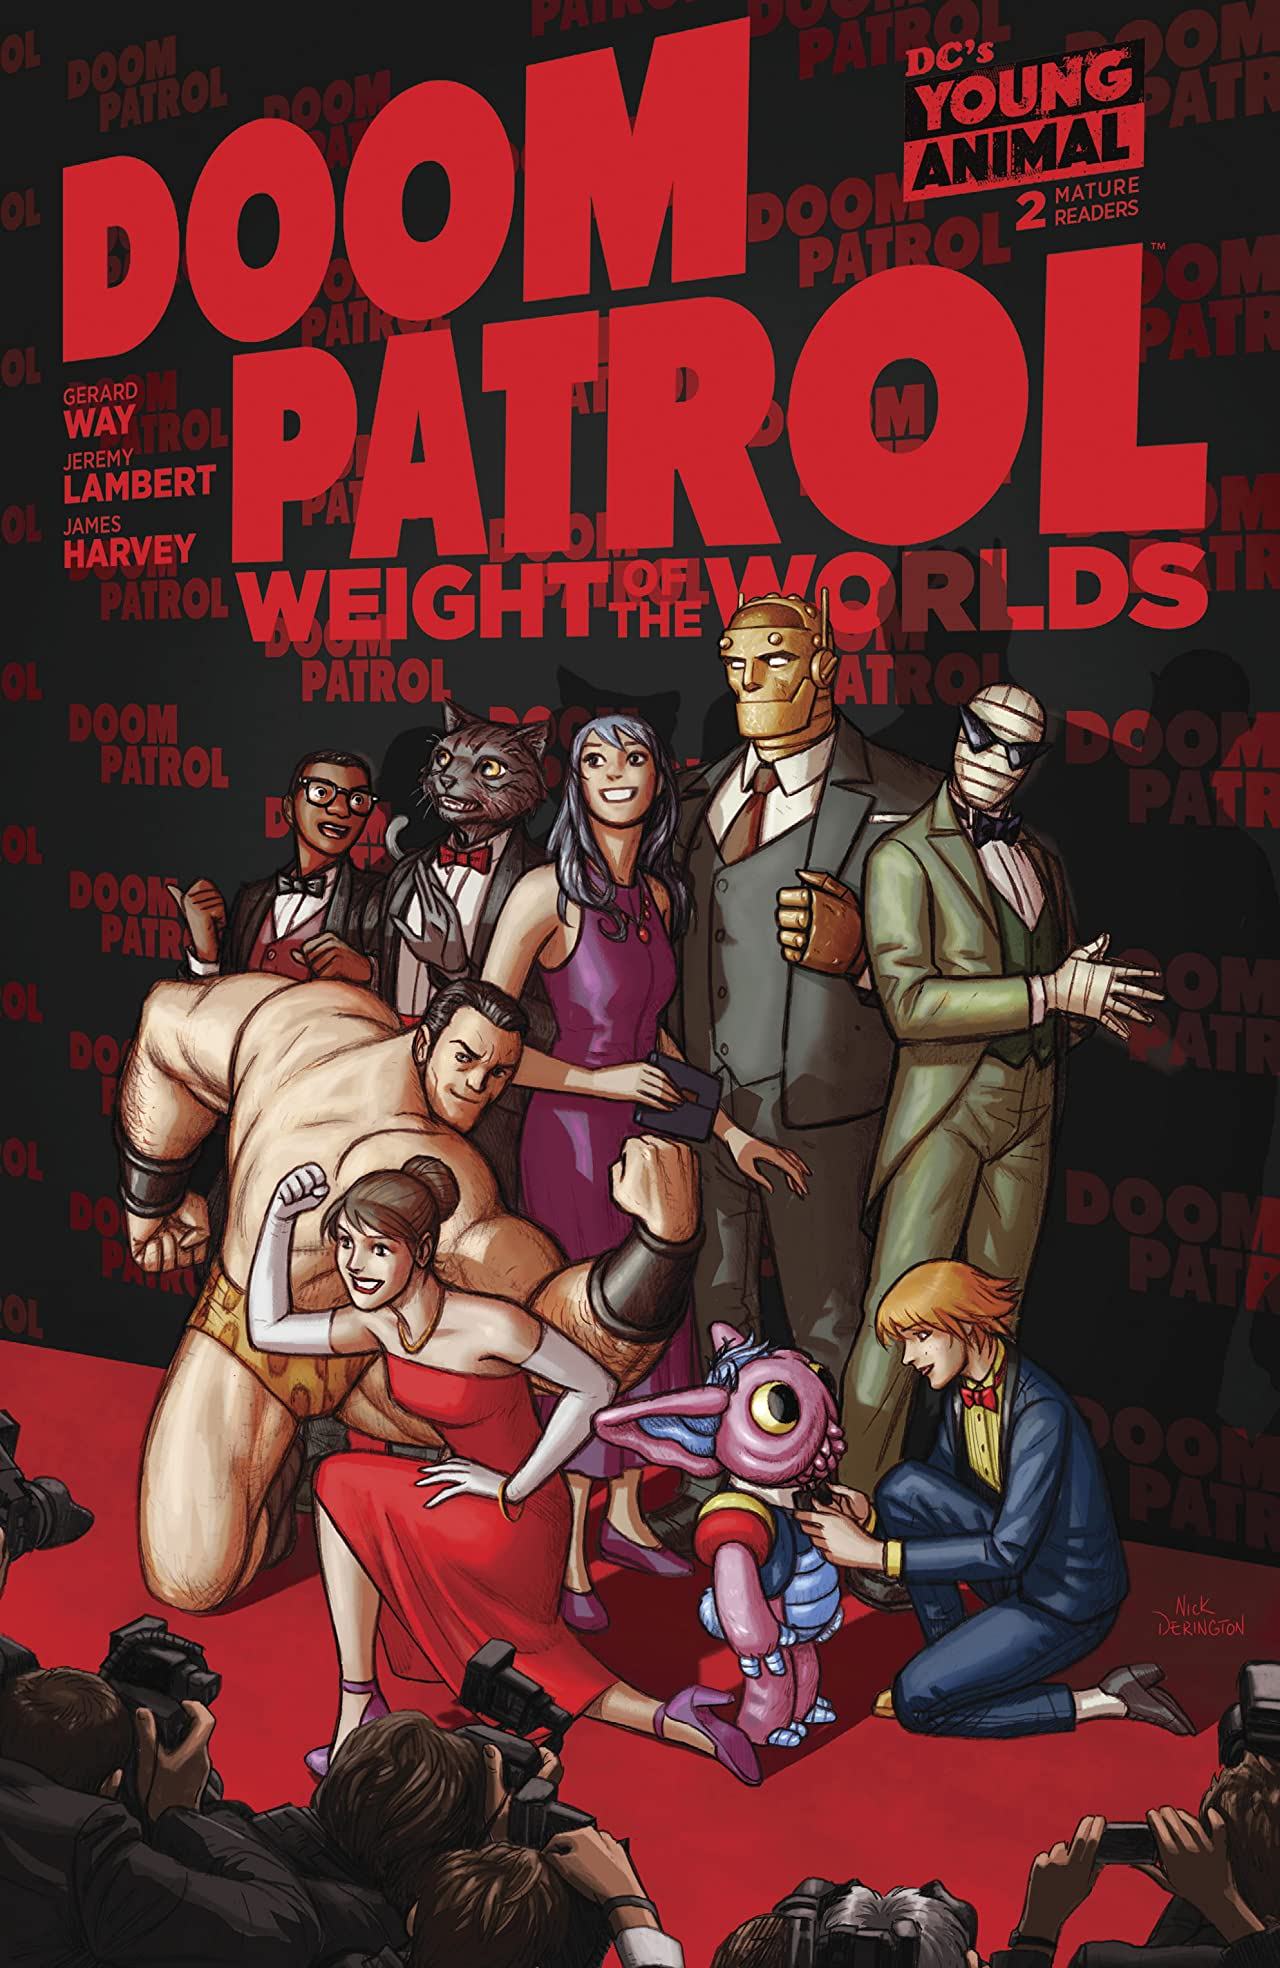 Doom Patrol: Weight of the Worlds (2019-) #2